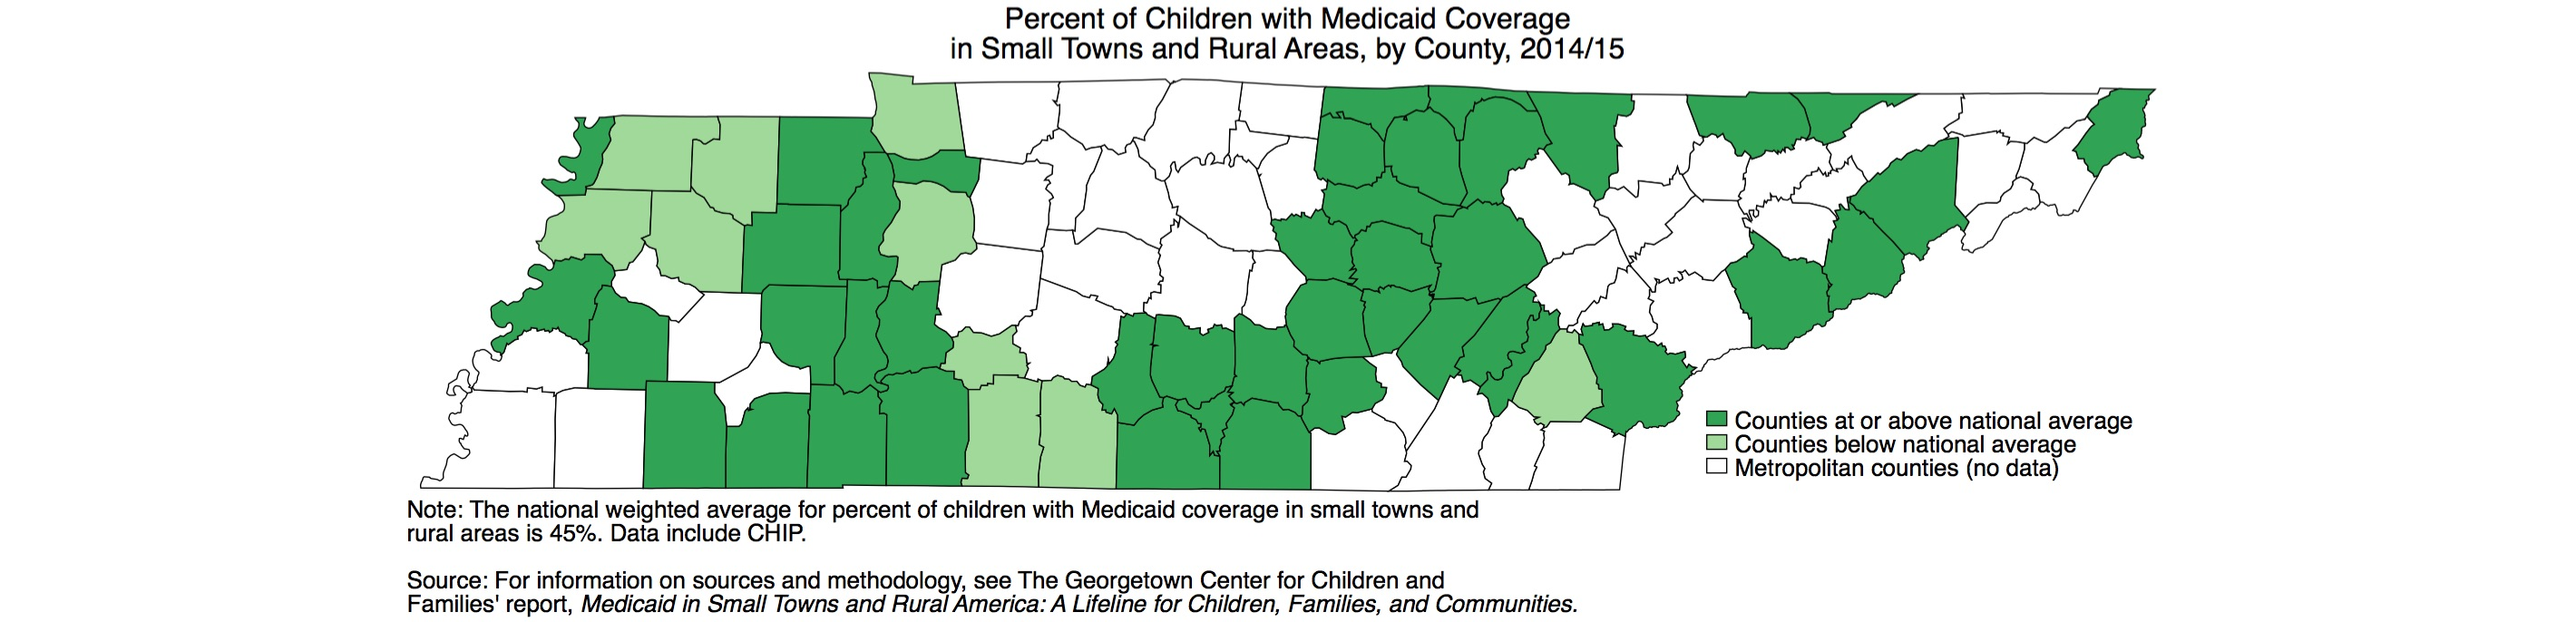 State Data on Child Health Coverage in Small Towns and Rural ... on corporate america map, flat america map, rural united states map, technology america map, indigenous america map, green america map, state america map, religious america map, transport america map, animals america map, latin america and the caribbean map, south america map, mountain america map, modern america map, north america population map, unit america map, small america map, western america map, religion america map,